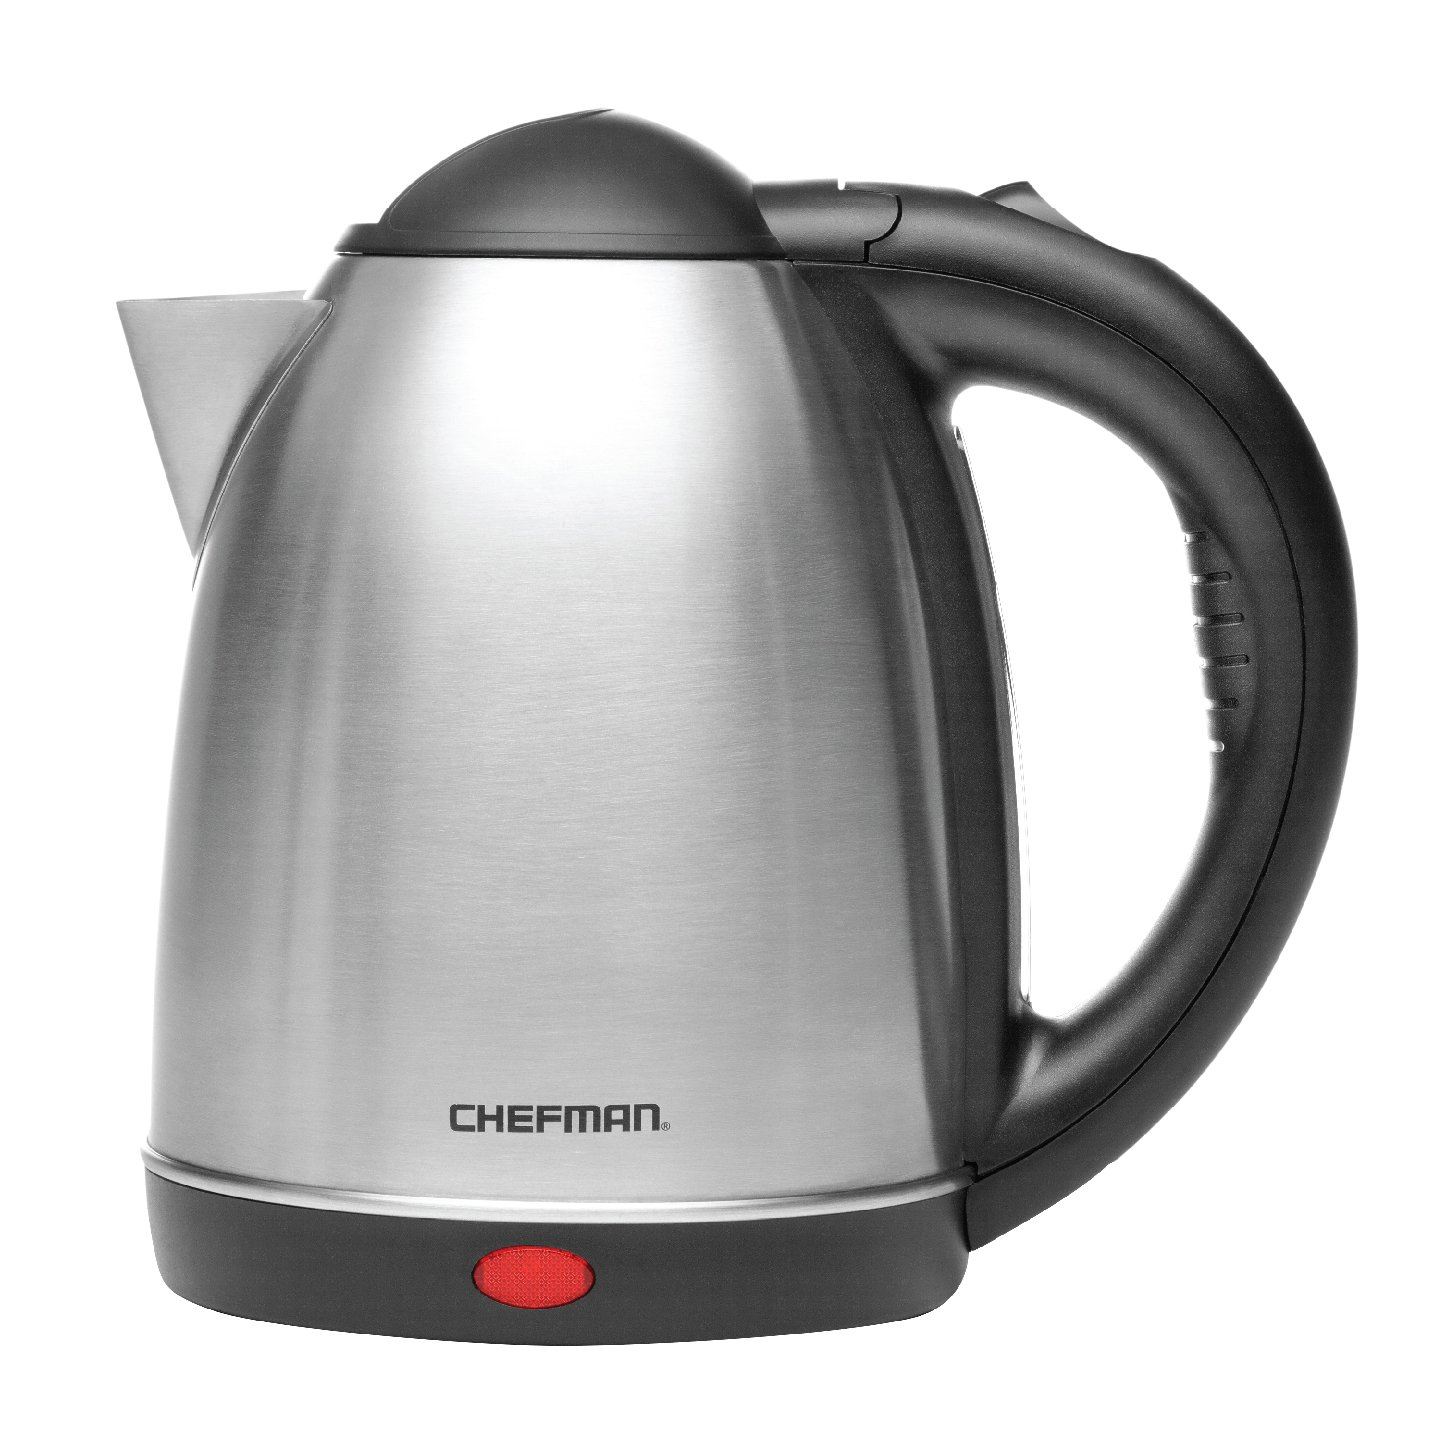 Chefman Stainless Steel Electric Kettle w/ 360° Swivel Base, Rapid Function with Auto Shut Off, Boil Dry Protection, BPA-Free Interior and Cool-Touch Handle, 1.7 Liter/1.8 Quart